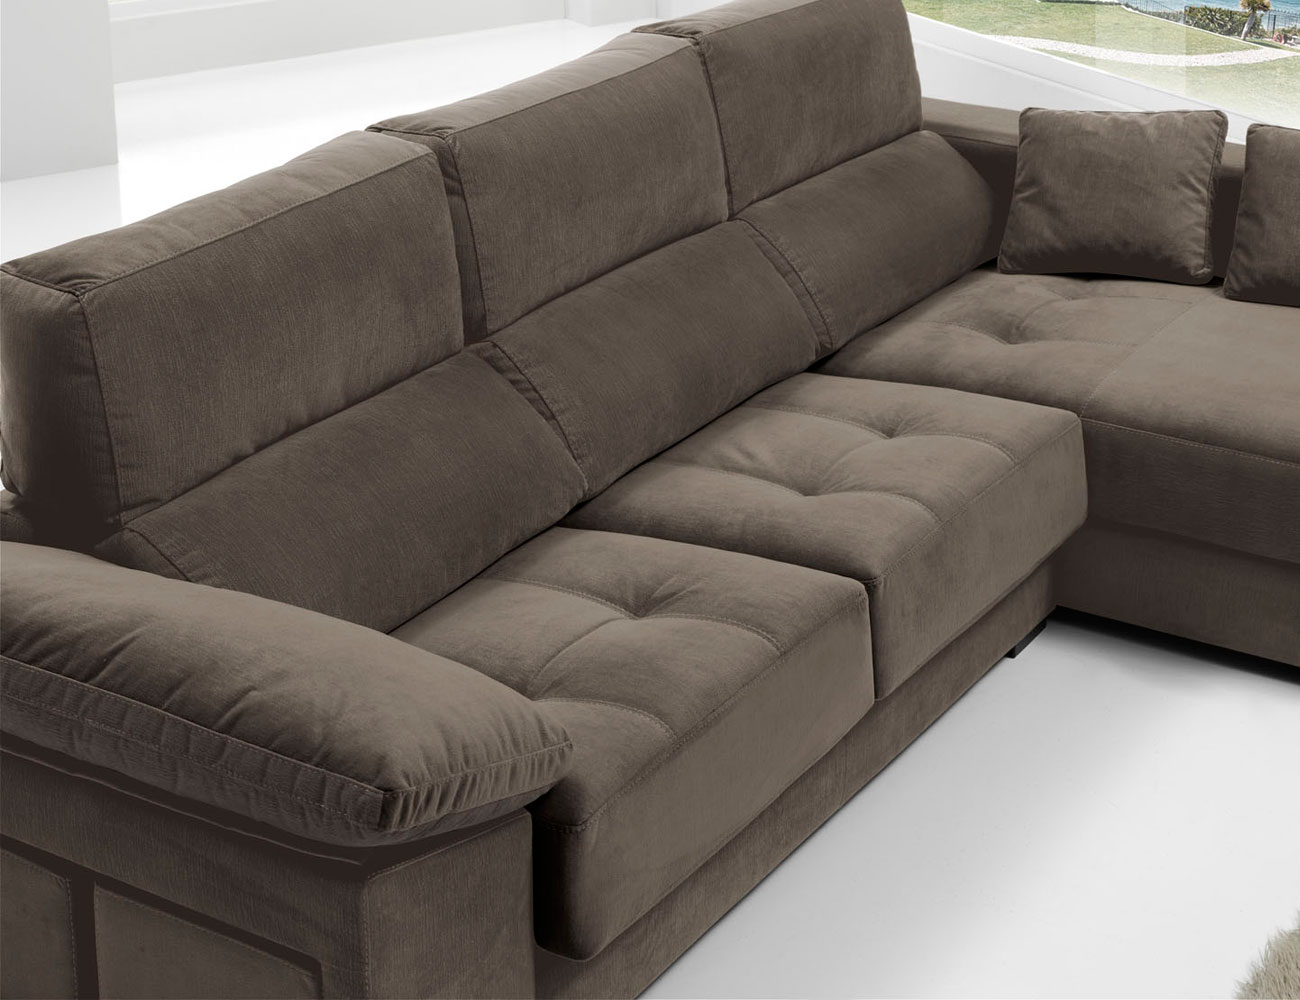 Sofa chaiselongue anti manchas bering pouf 218